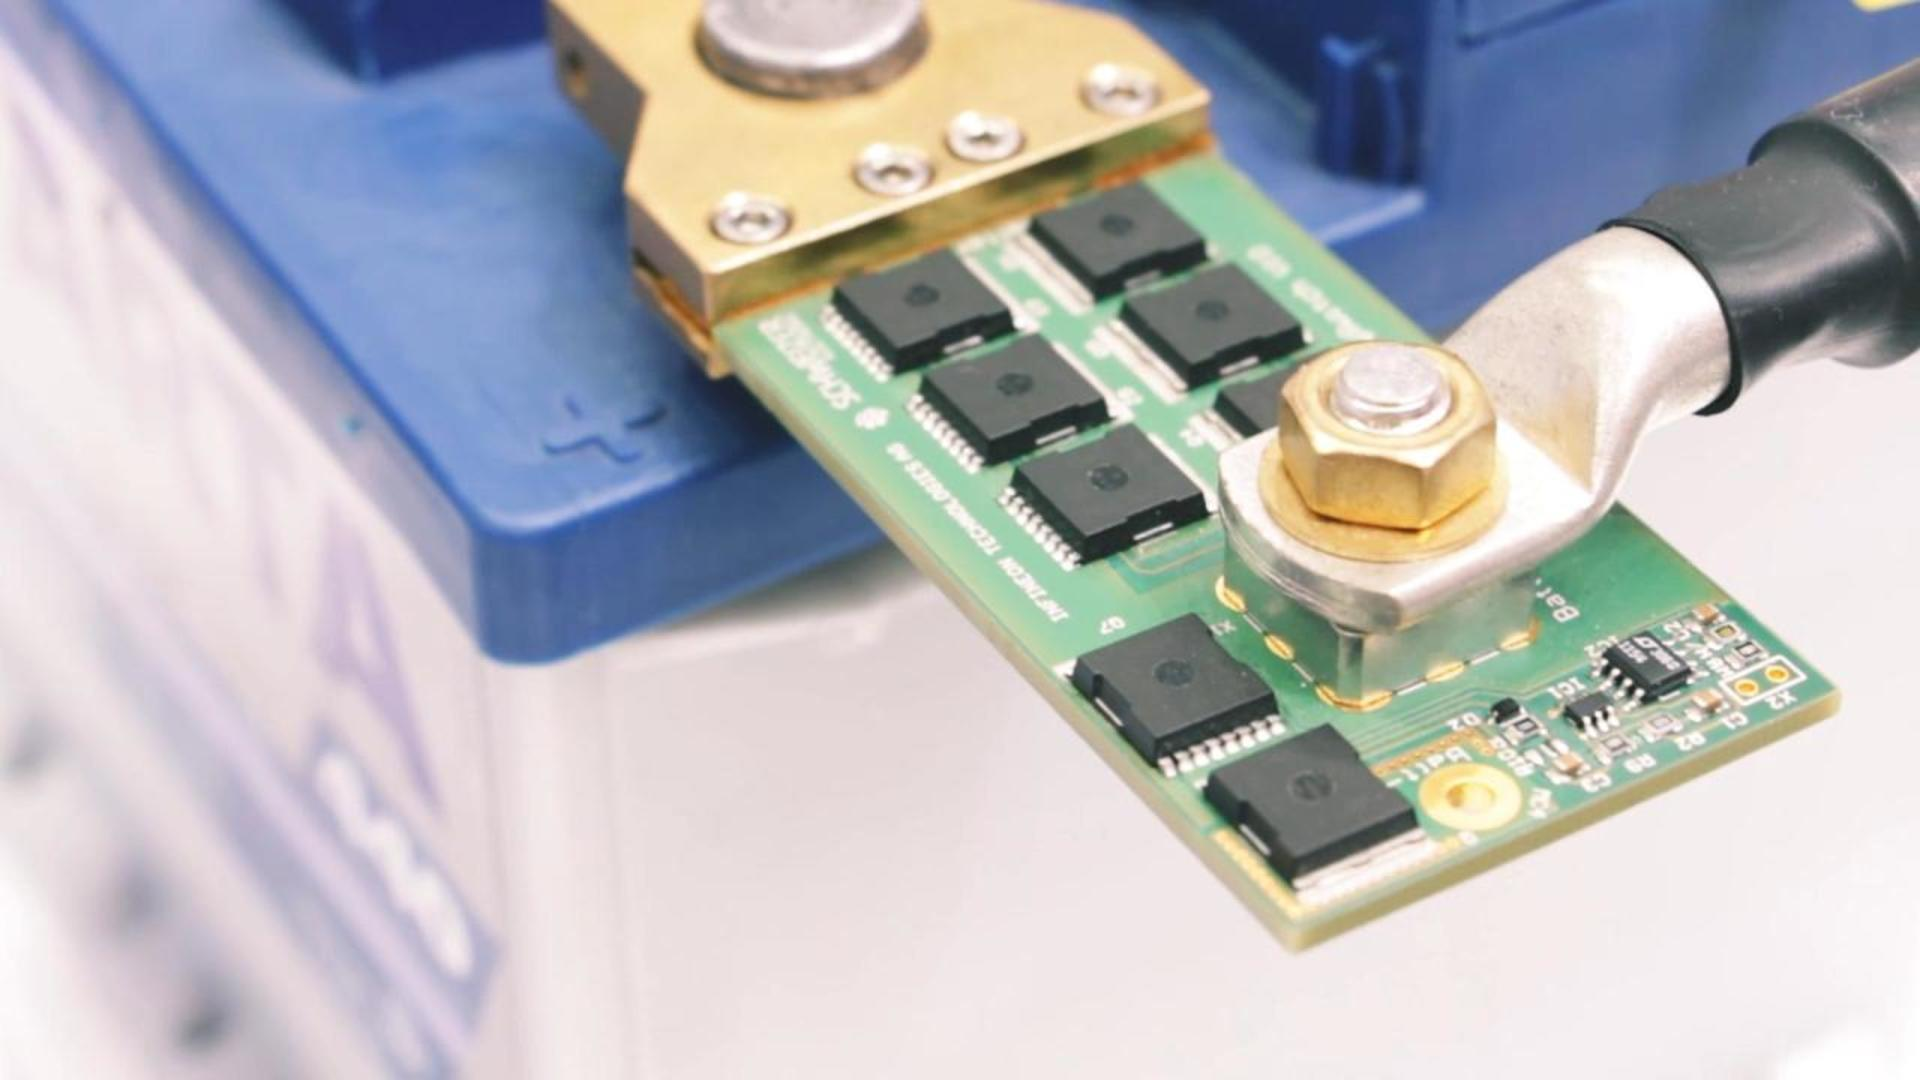 12V Battery Switch at electronica 2014